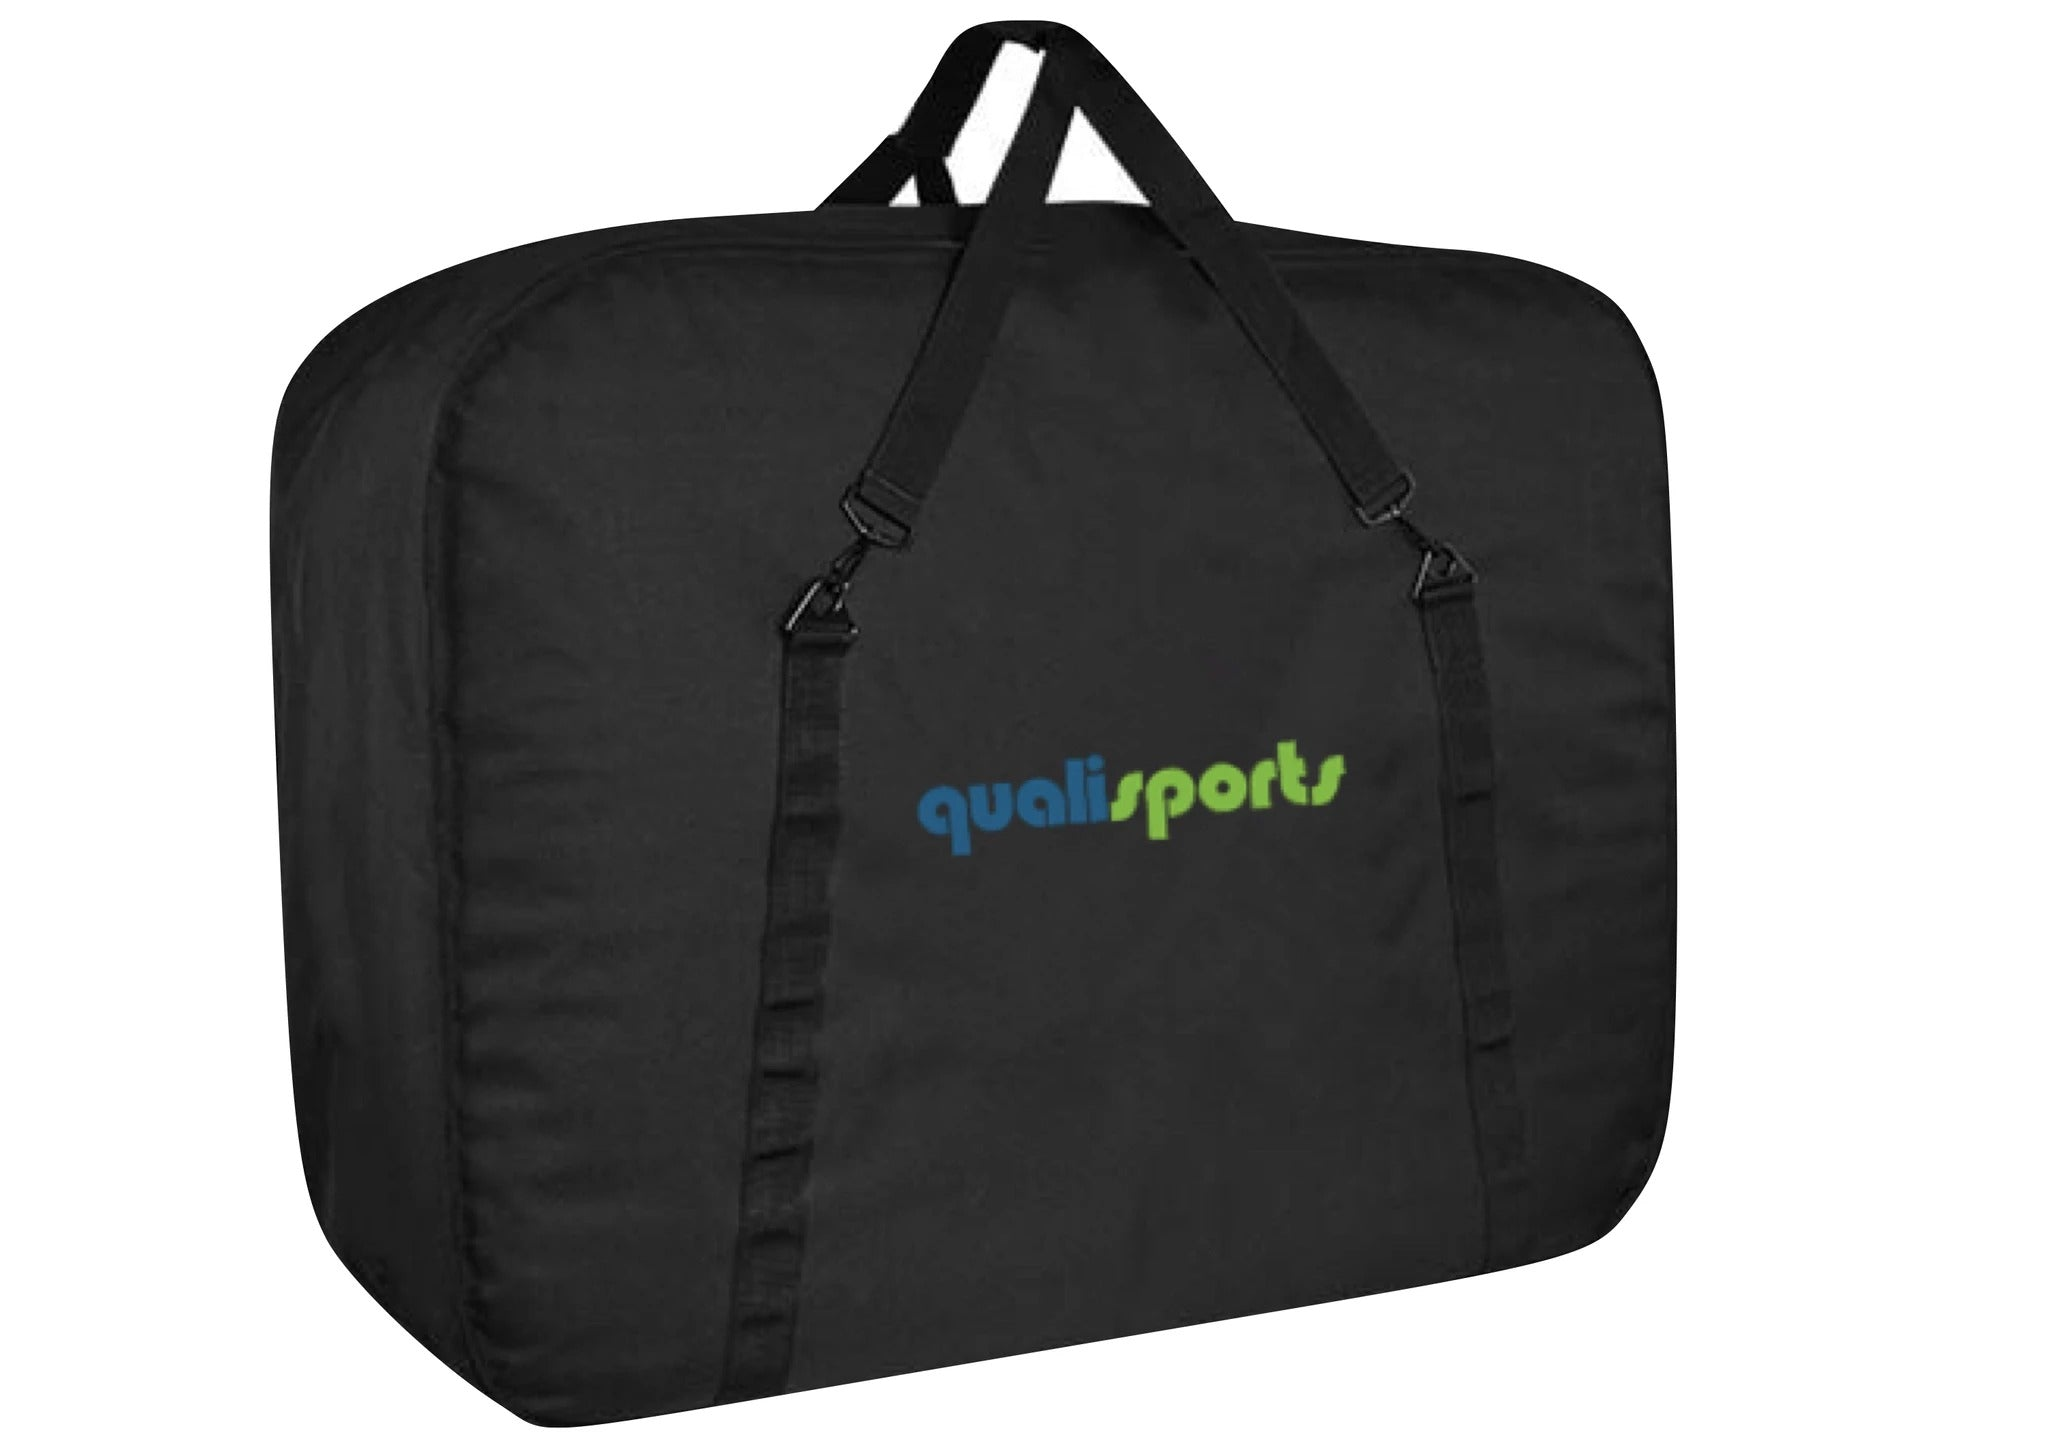 Qualisports-Folding-Electric-Bike-Carry-Bag